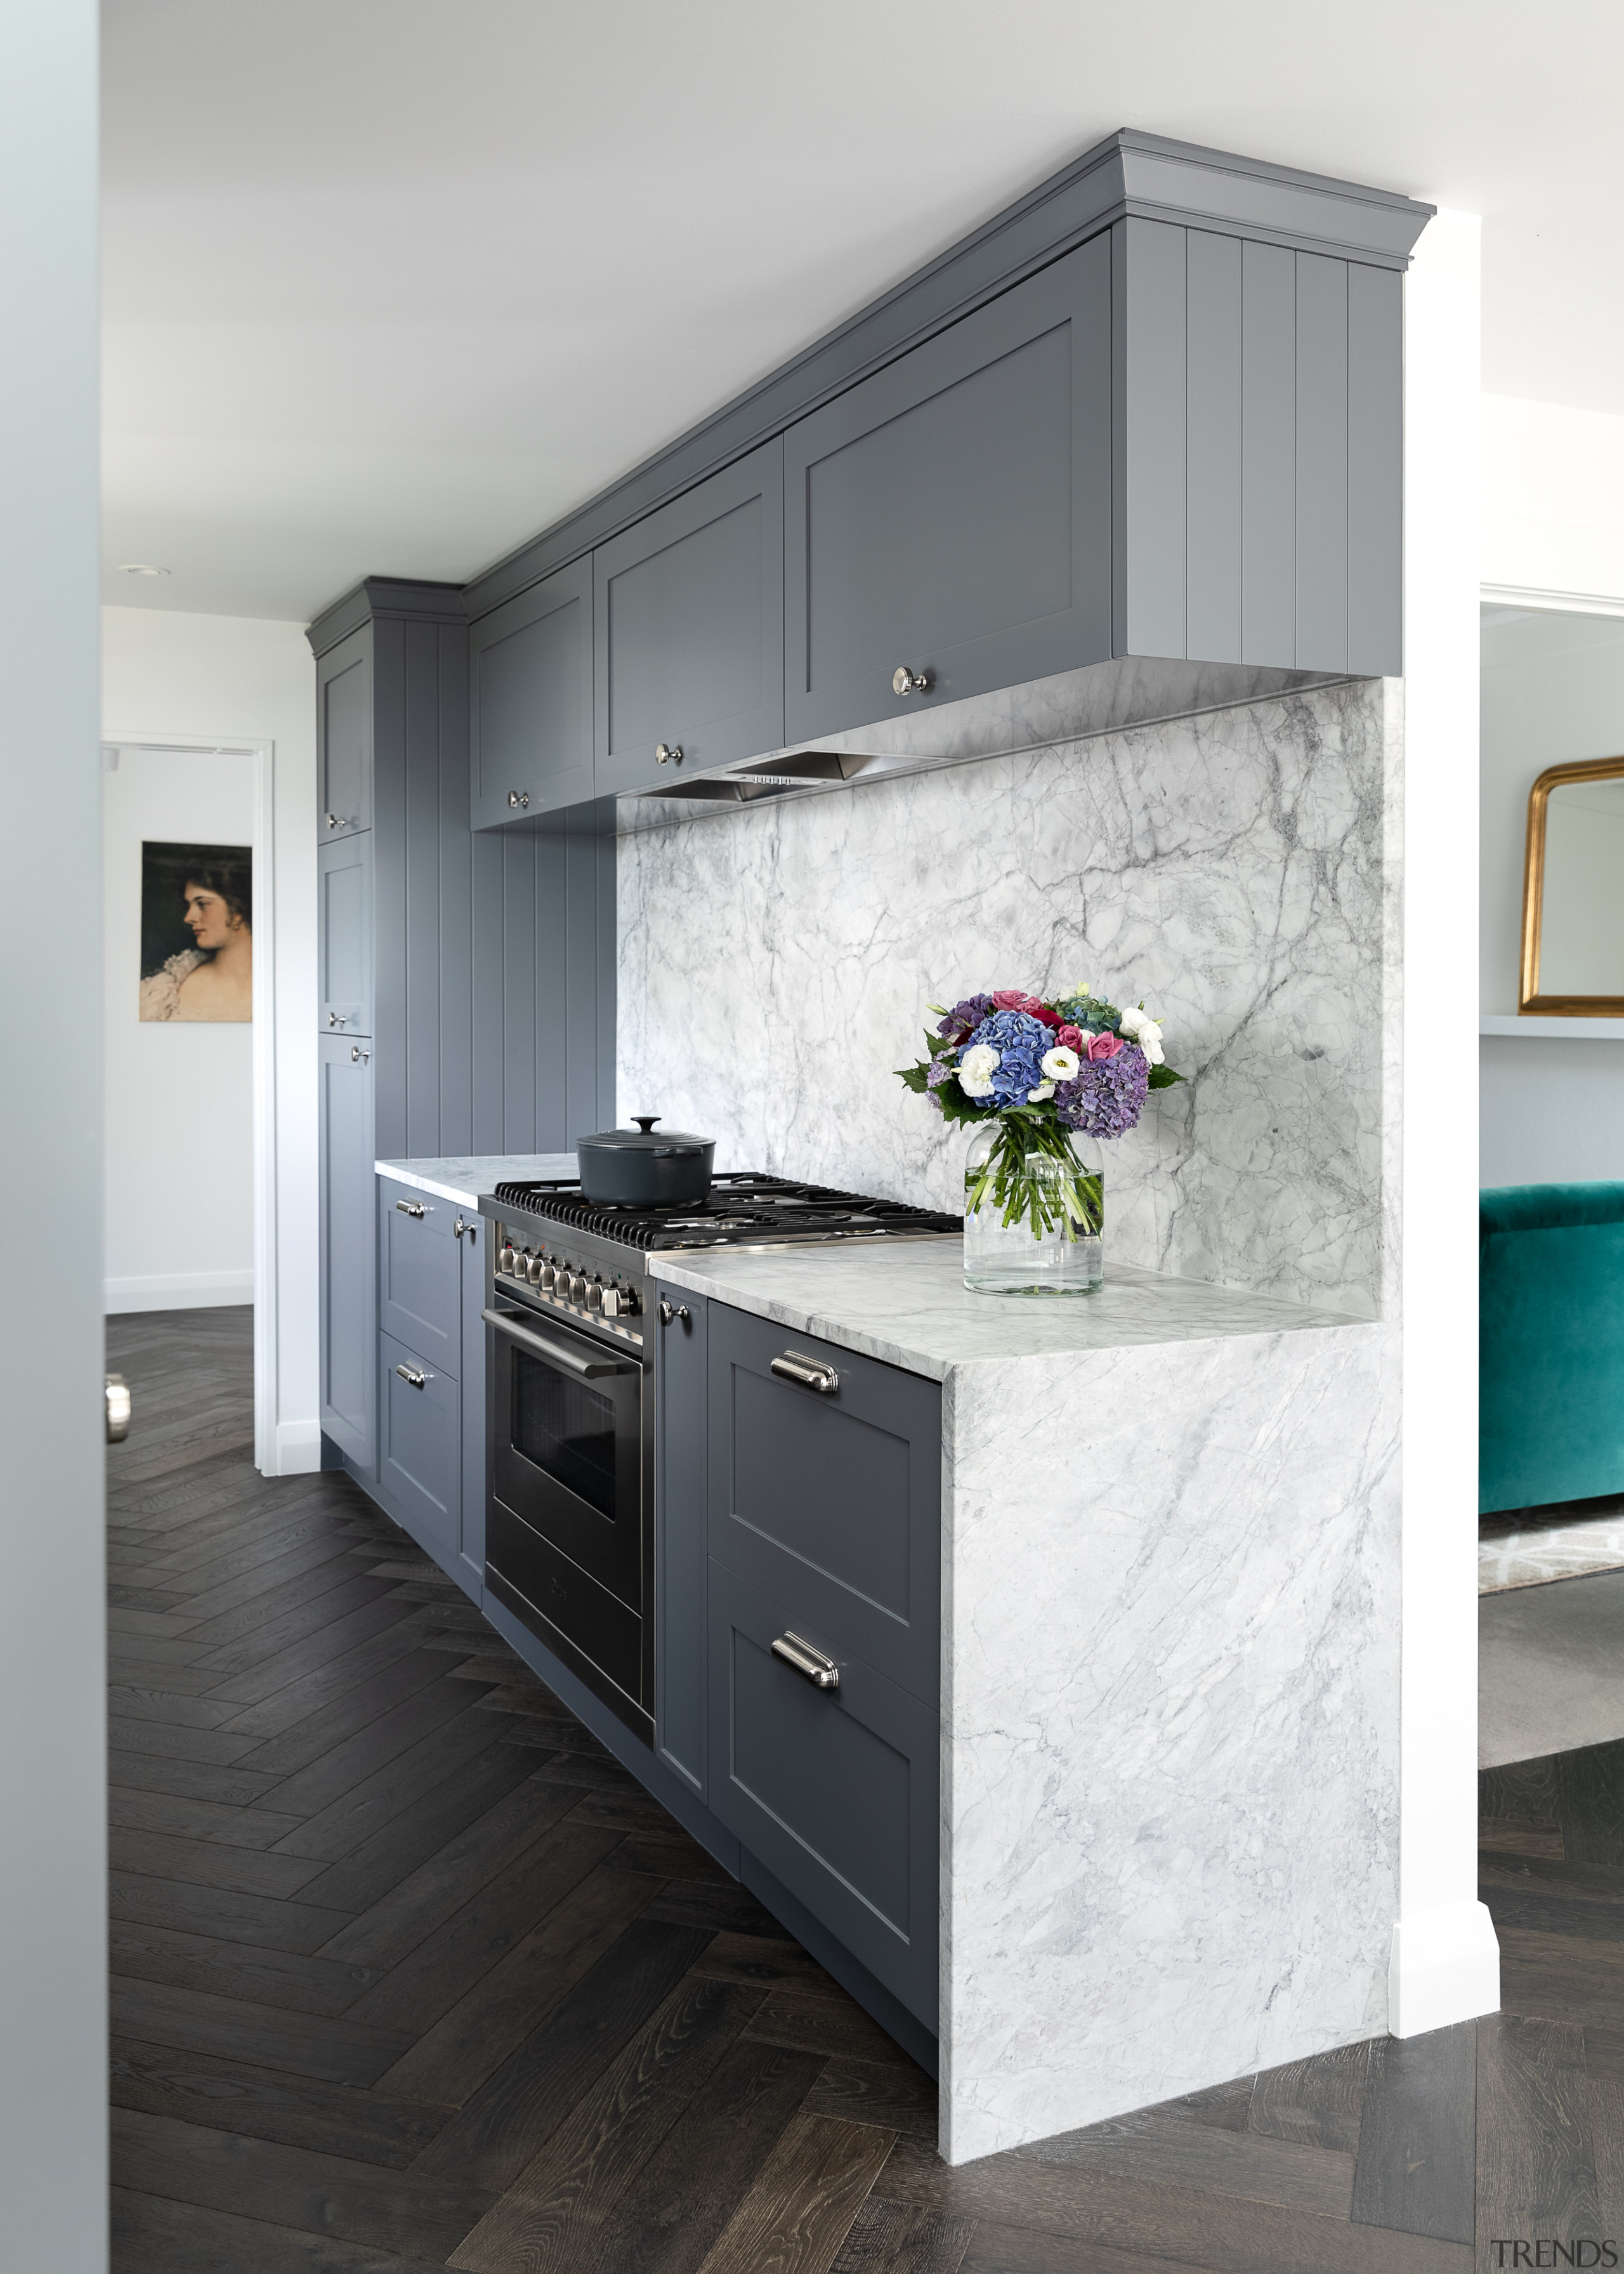 The grey cabinetry faces connect with the grey